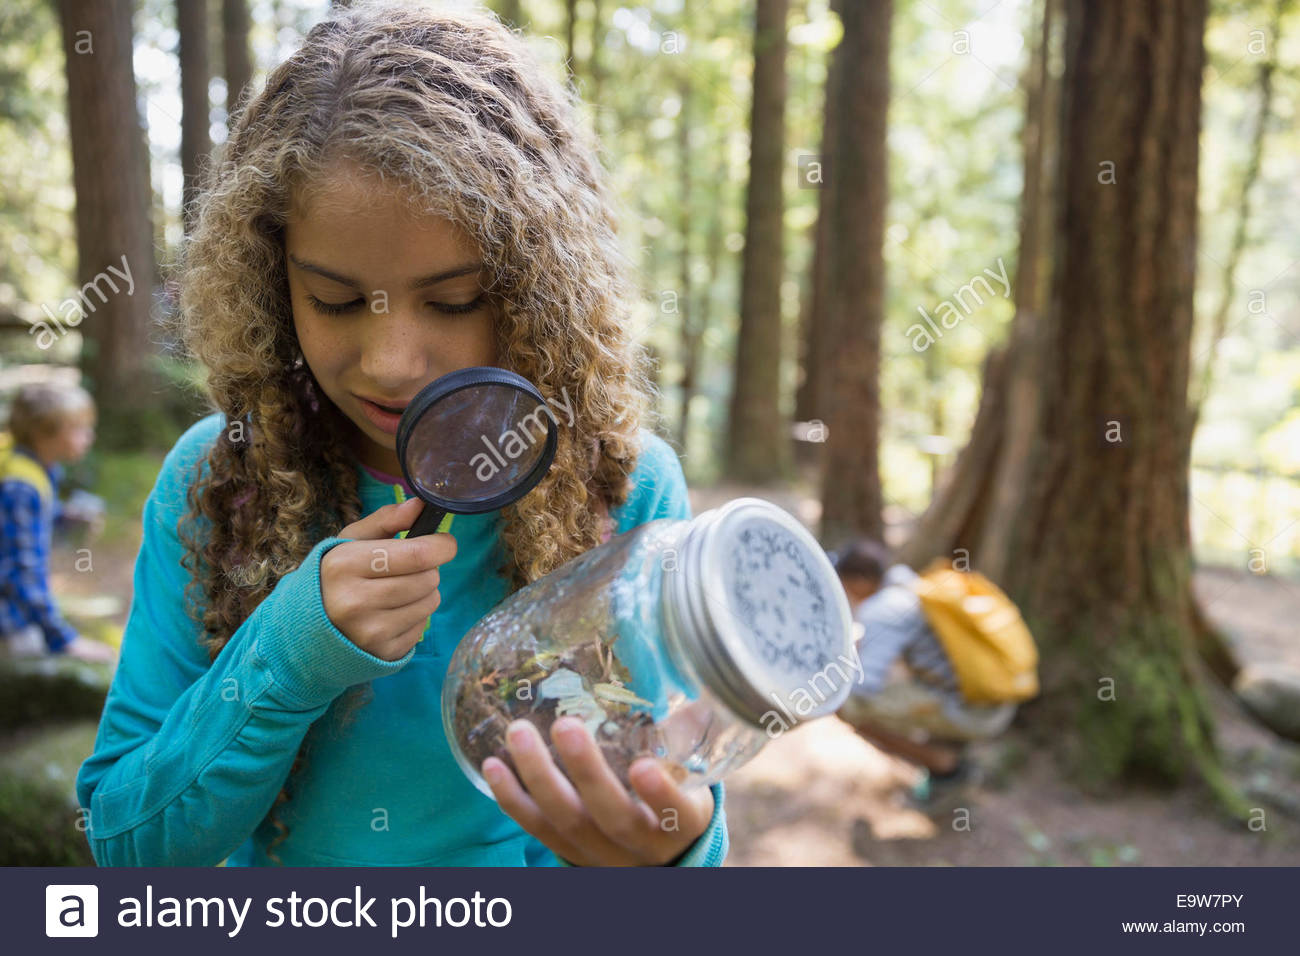 Girl with magnifying glass examining plants in jar - Stock Image